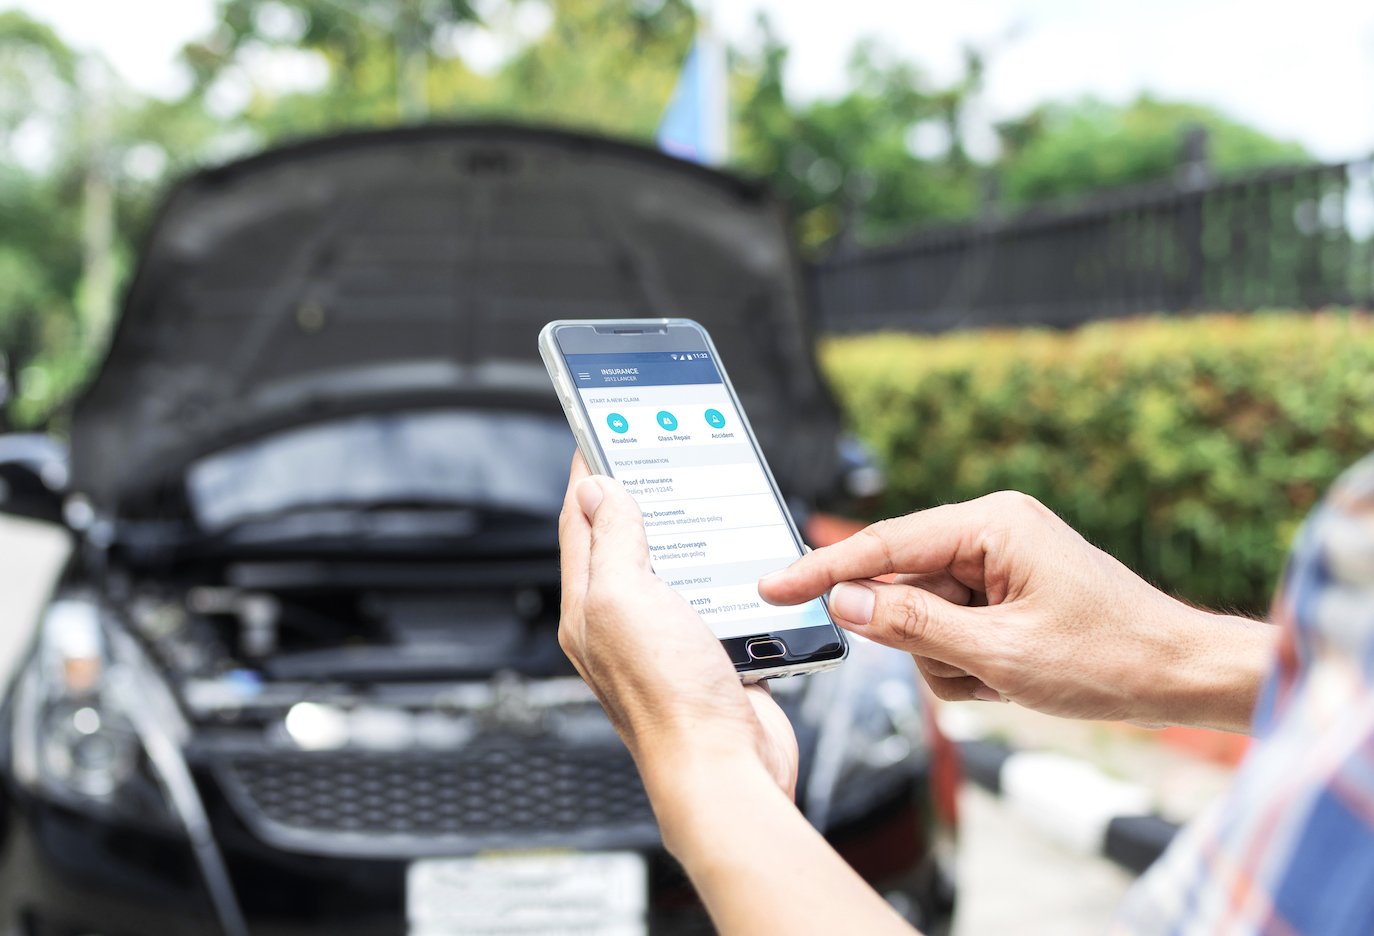 Using the Metromile app to request roadside assistance